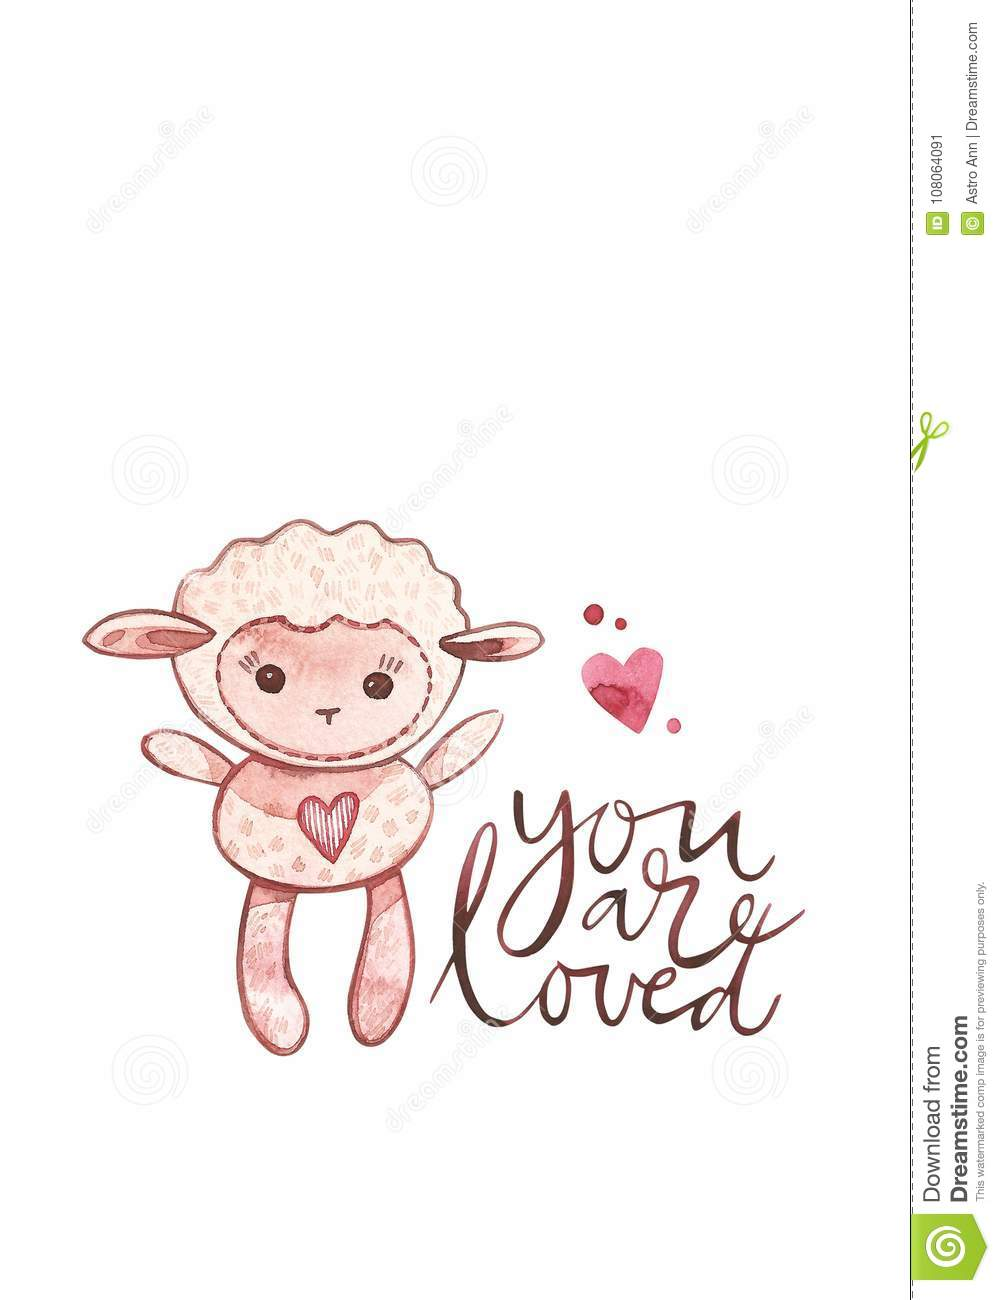 Valentines day cards with lamb you are loved romantic quote for download valentines day cards with lamb you are loved romantic quote for design greeting m4hsunfo